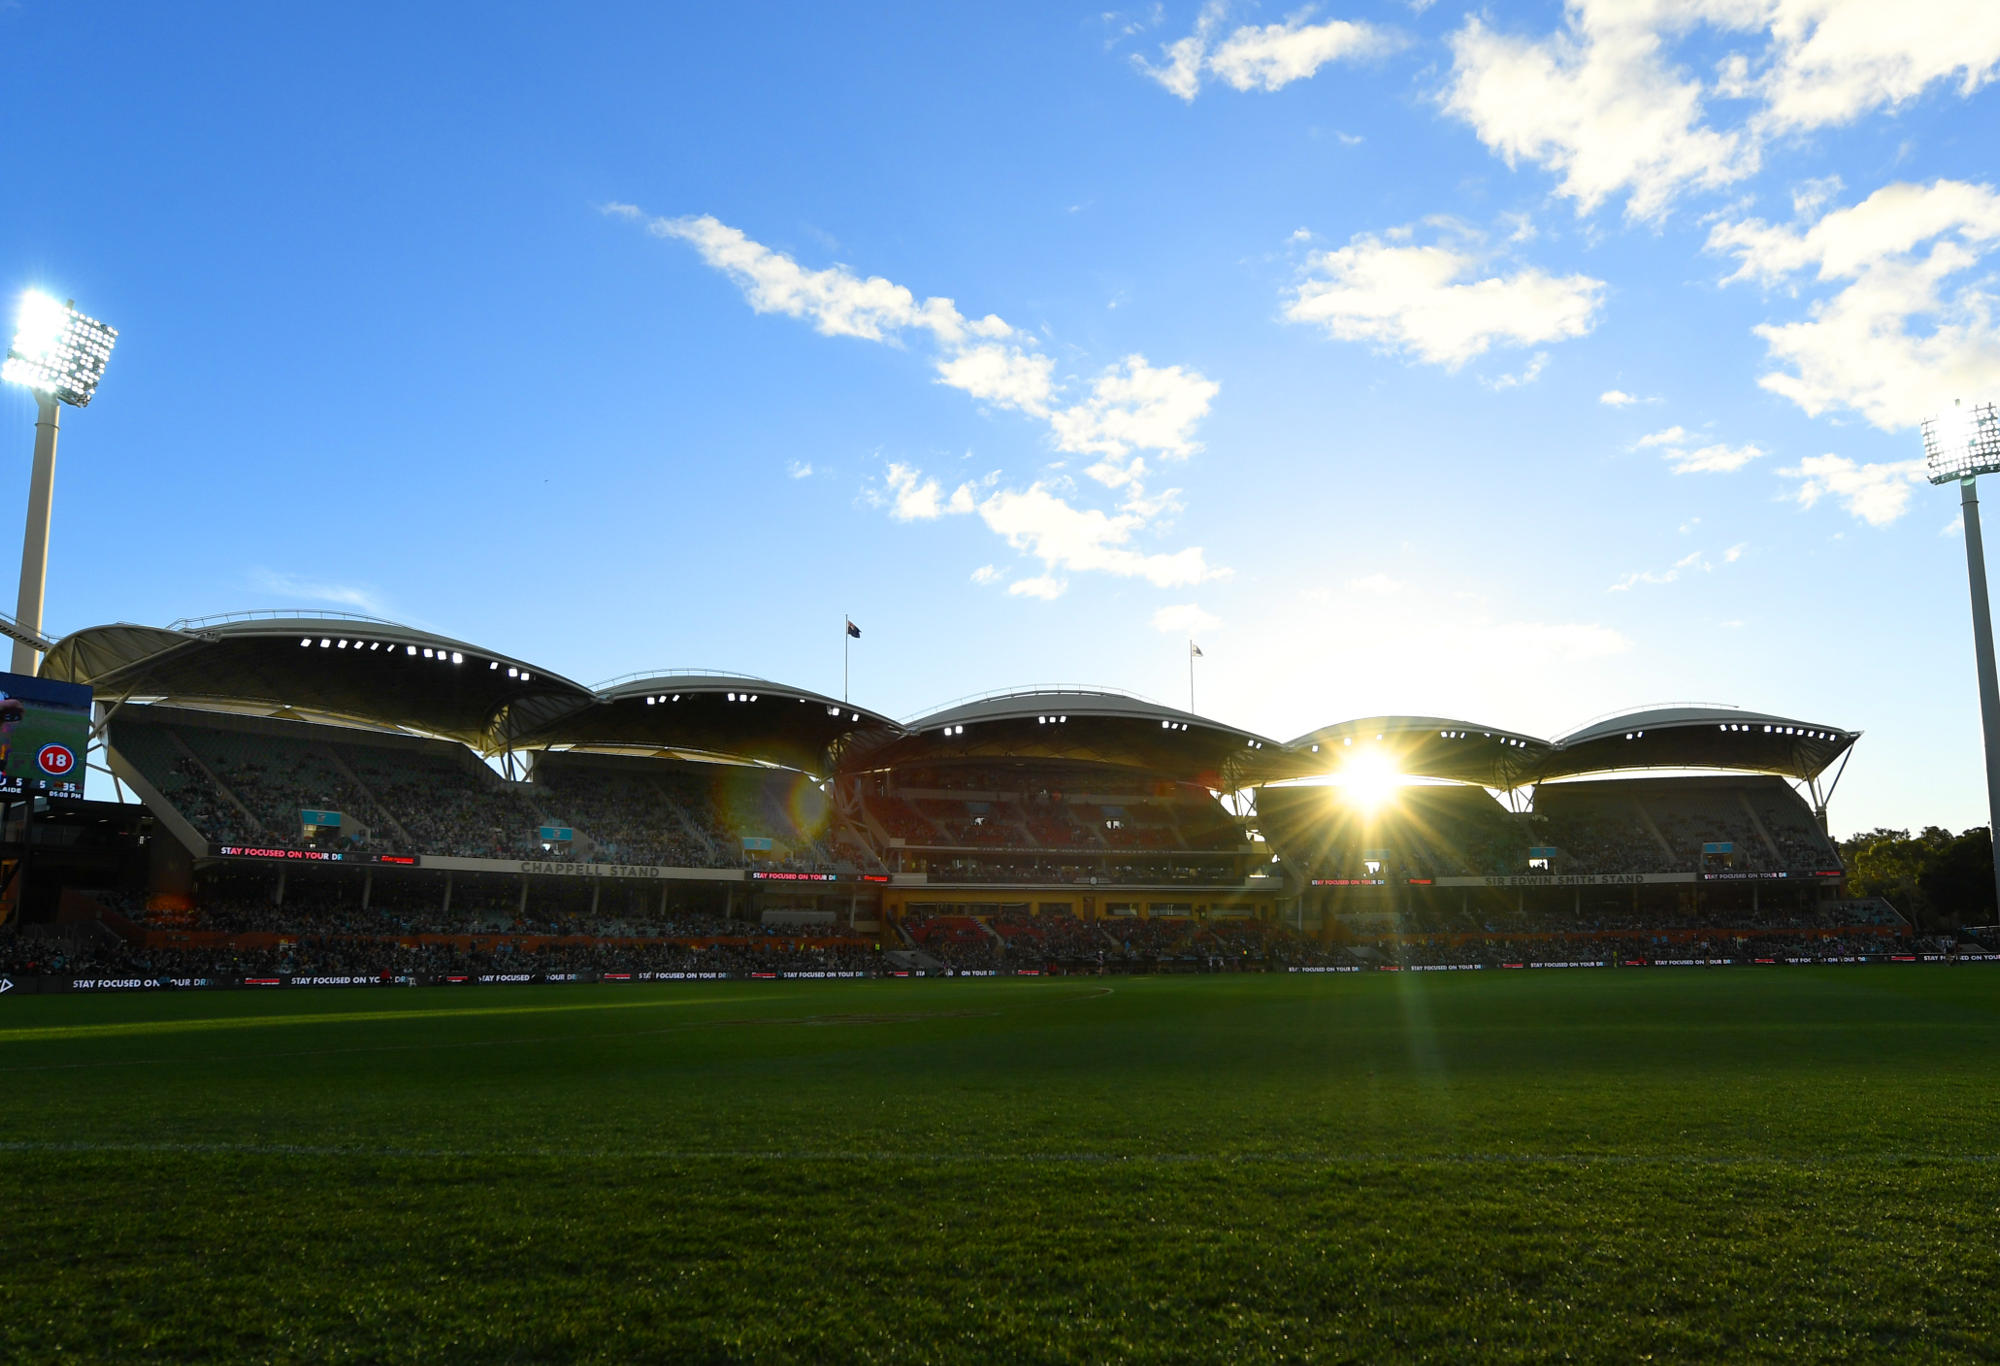 The Adelaide Oval's western stands.